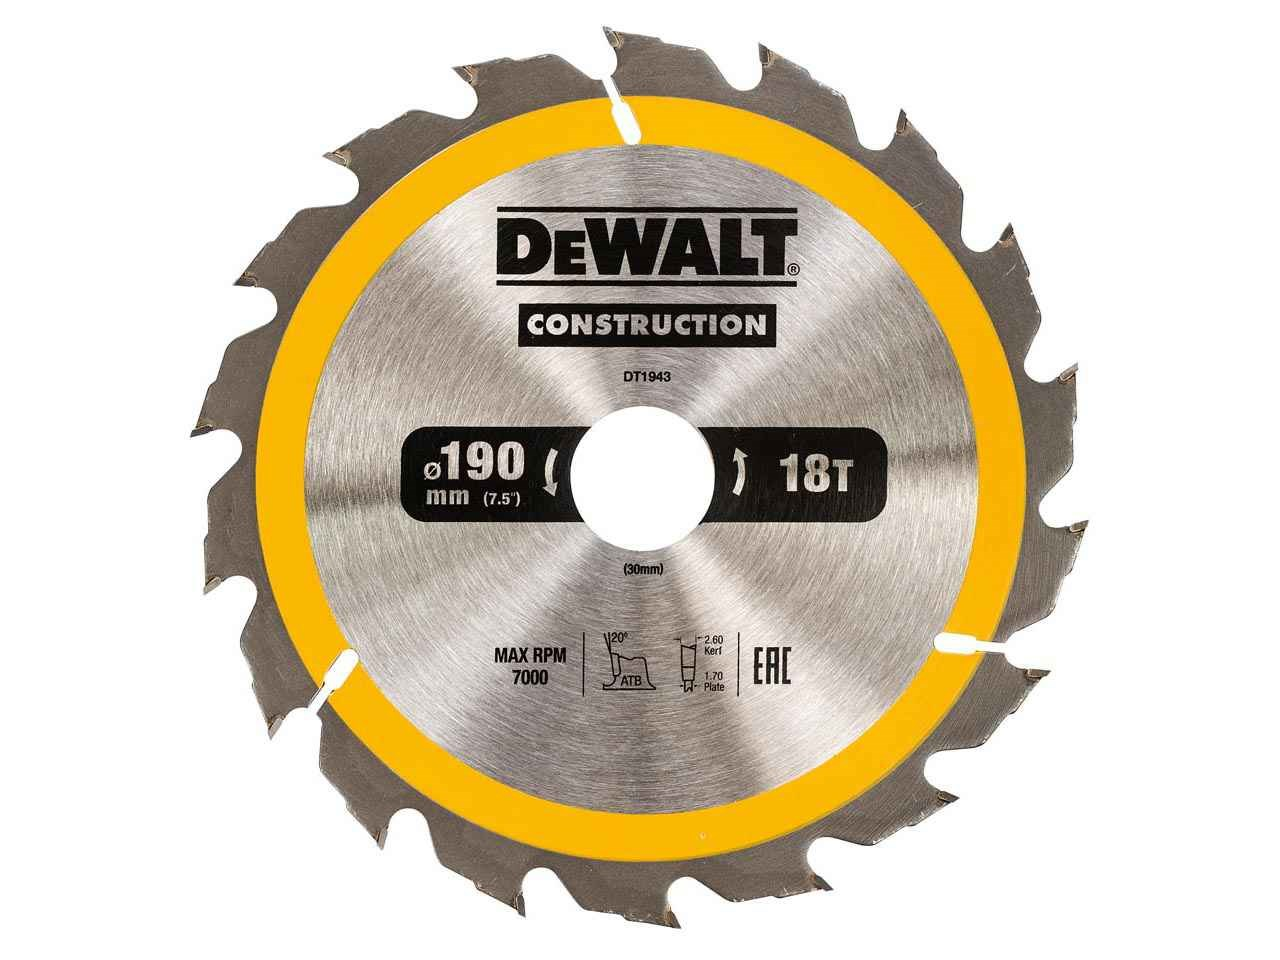 Dewalt dt1943qz construction circular saw blade 190x30mm 18t ac keyboard keysfo Images